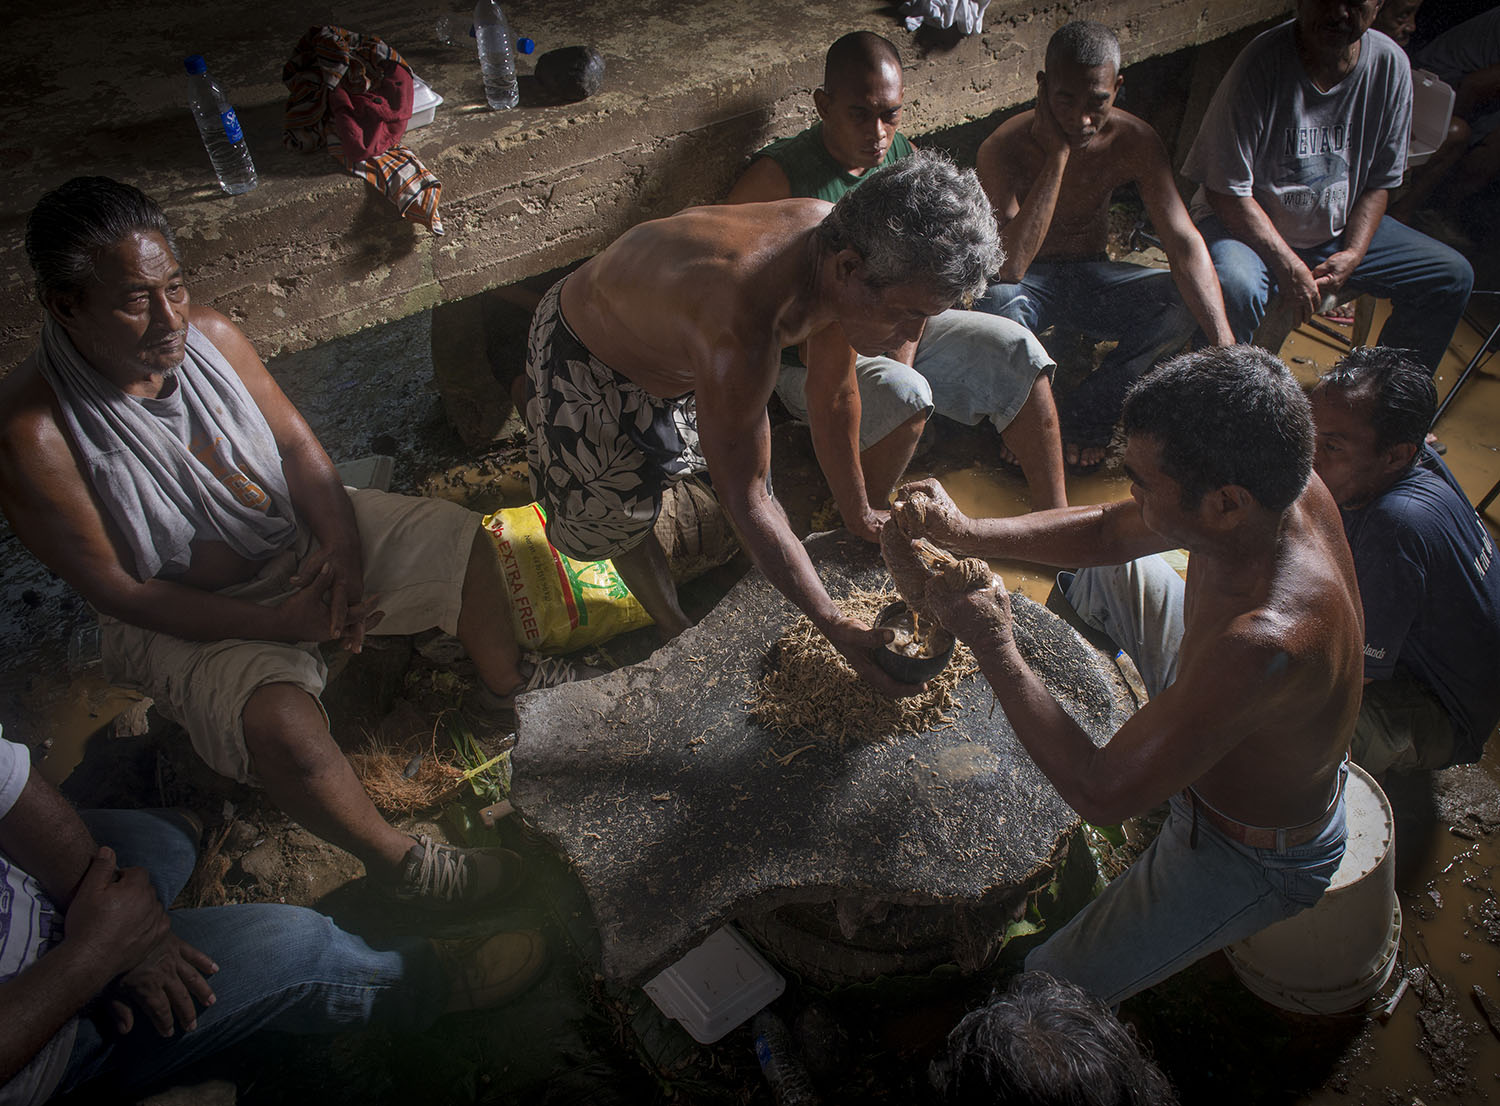 <p>Pounding sakau, a mildly narcotic drink produced from the root of a plant, in Madolenhimw.</p>